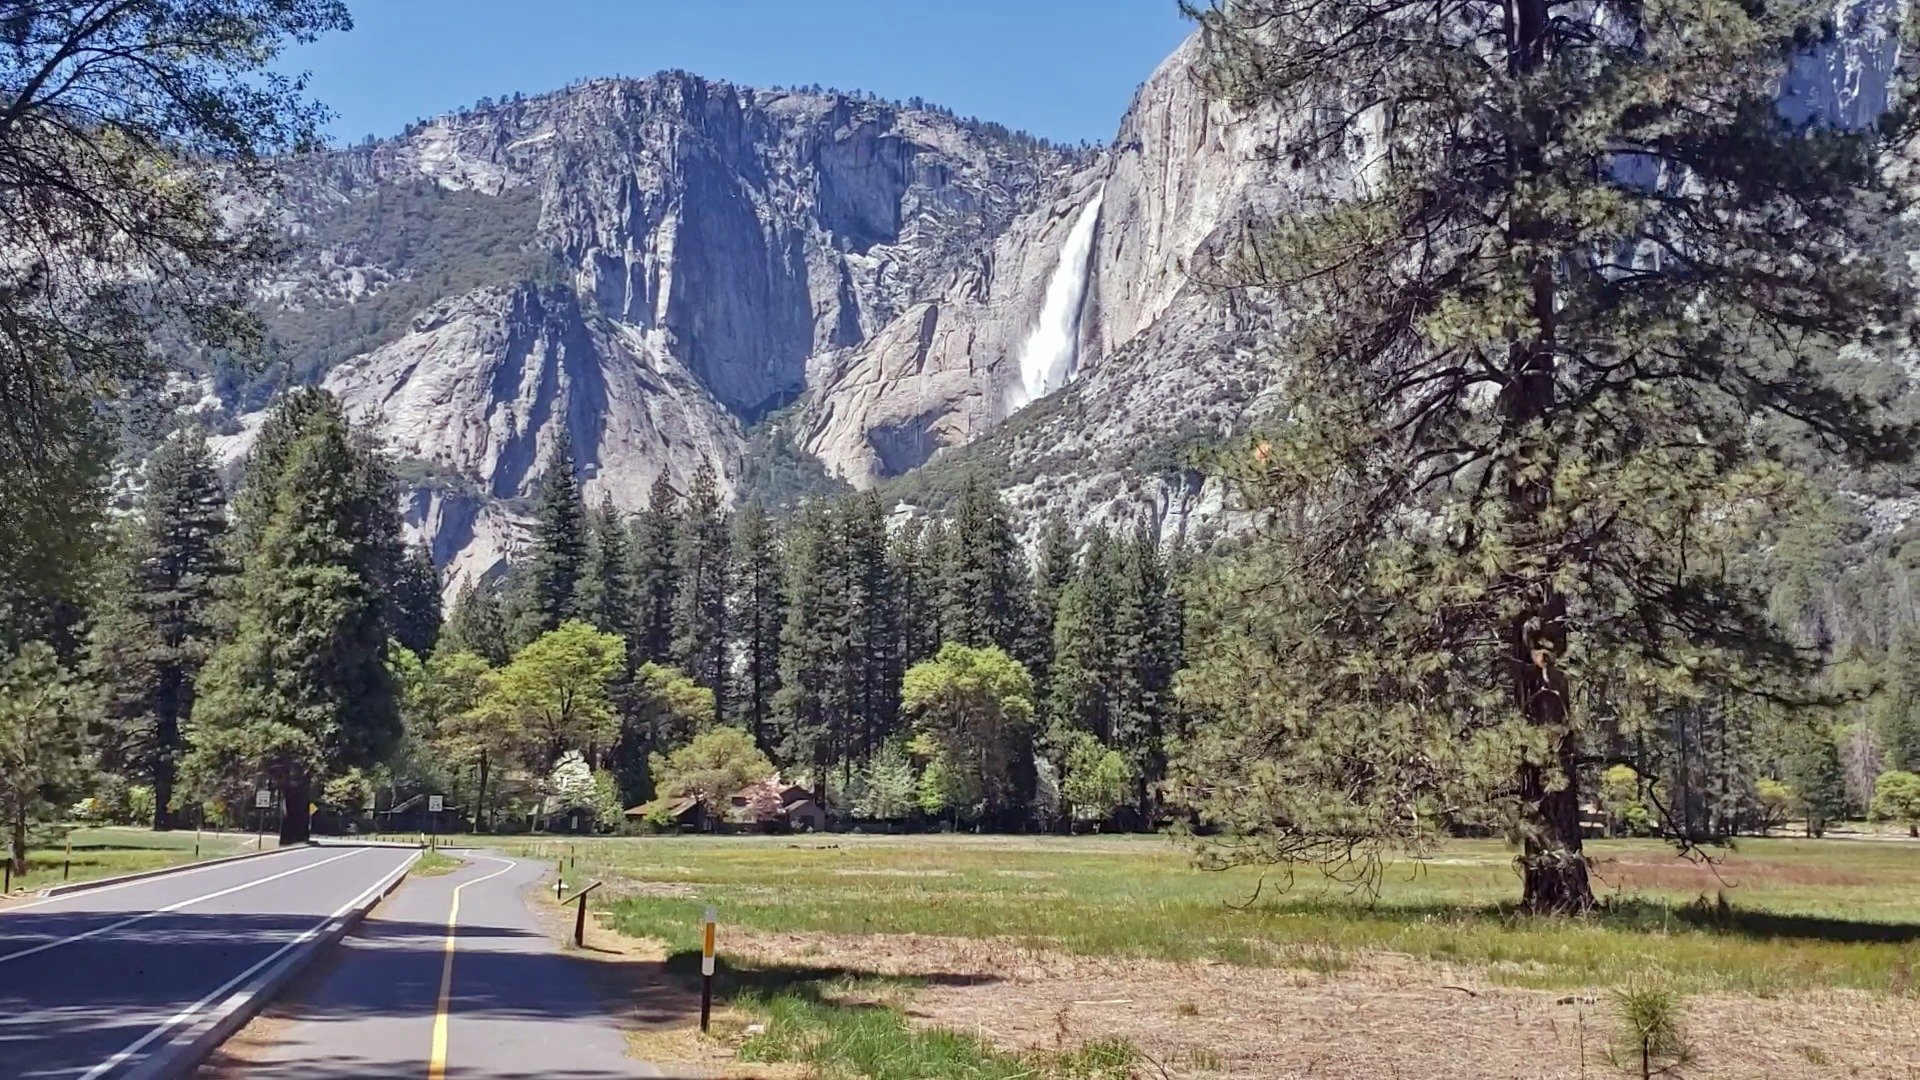 A scenic shot of a empty bike path and road in Yosemite Valley, with Yosemite Falls visible at right. Photo: Cory Goehring